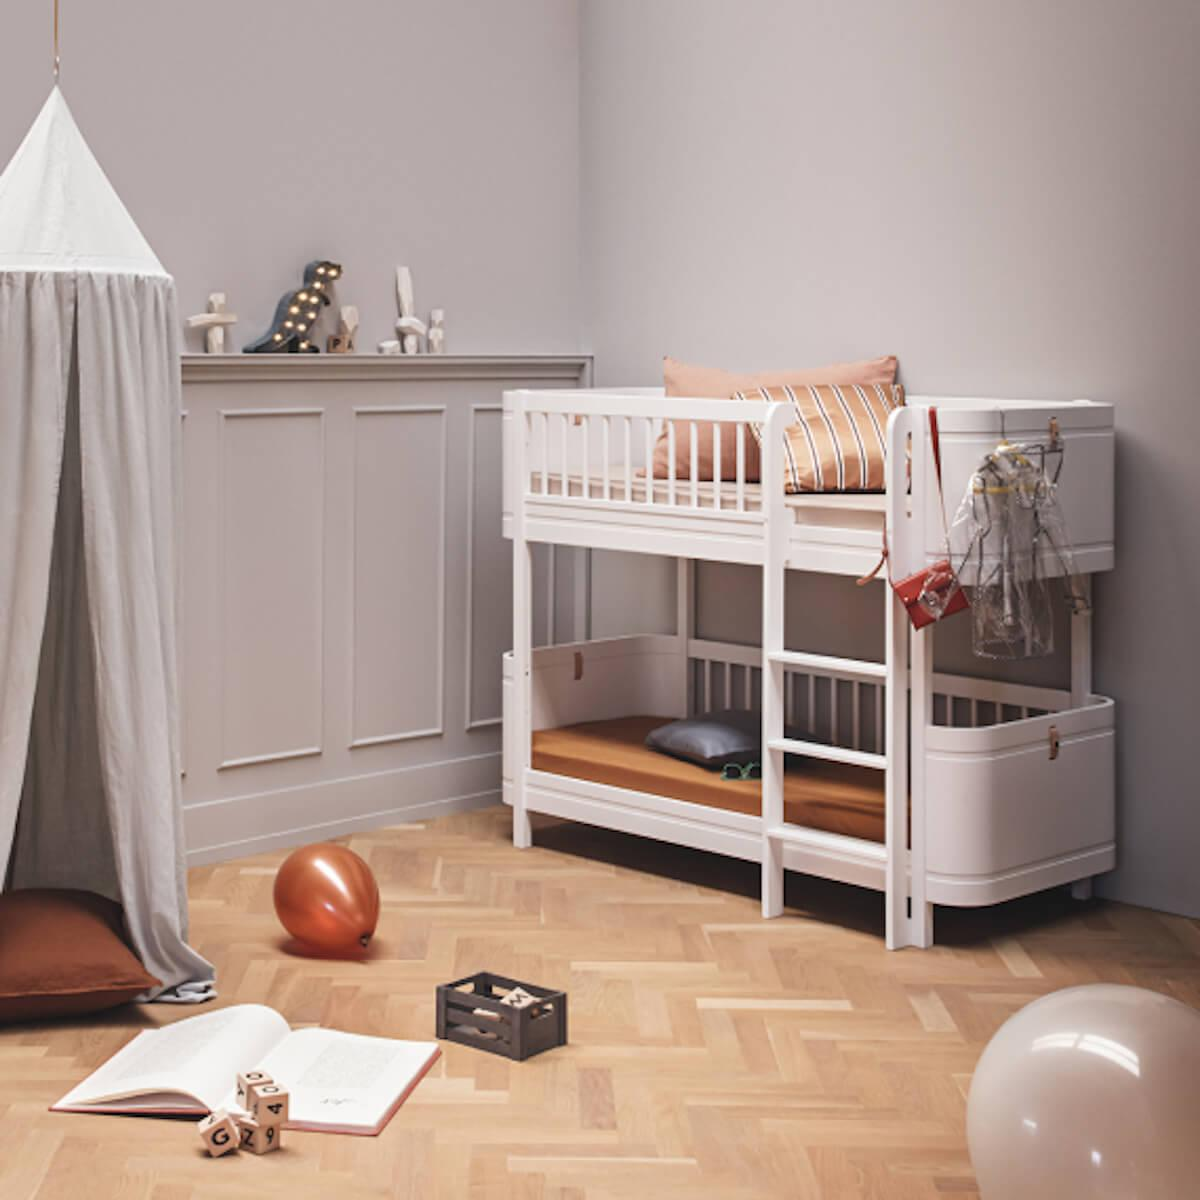 Lit superposées 68x162cm WOOD MINI+ Oliver Furniture blanc